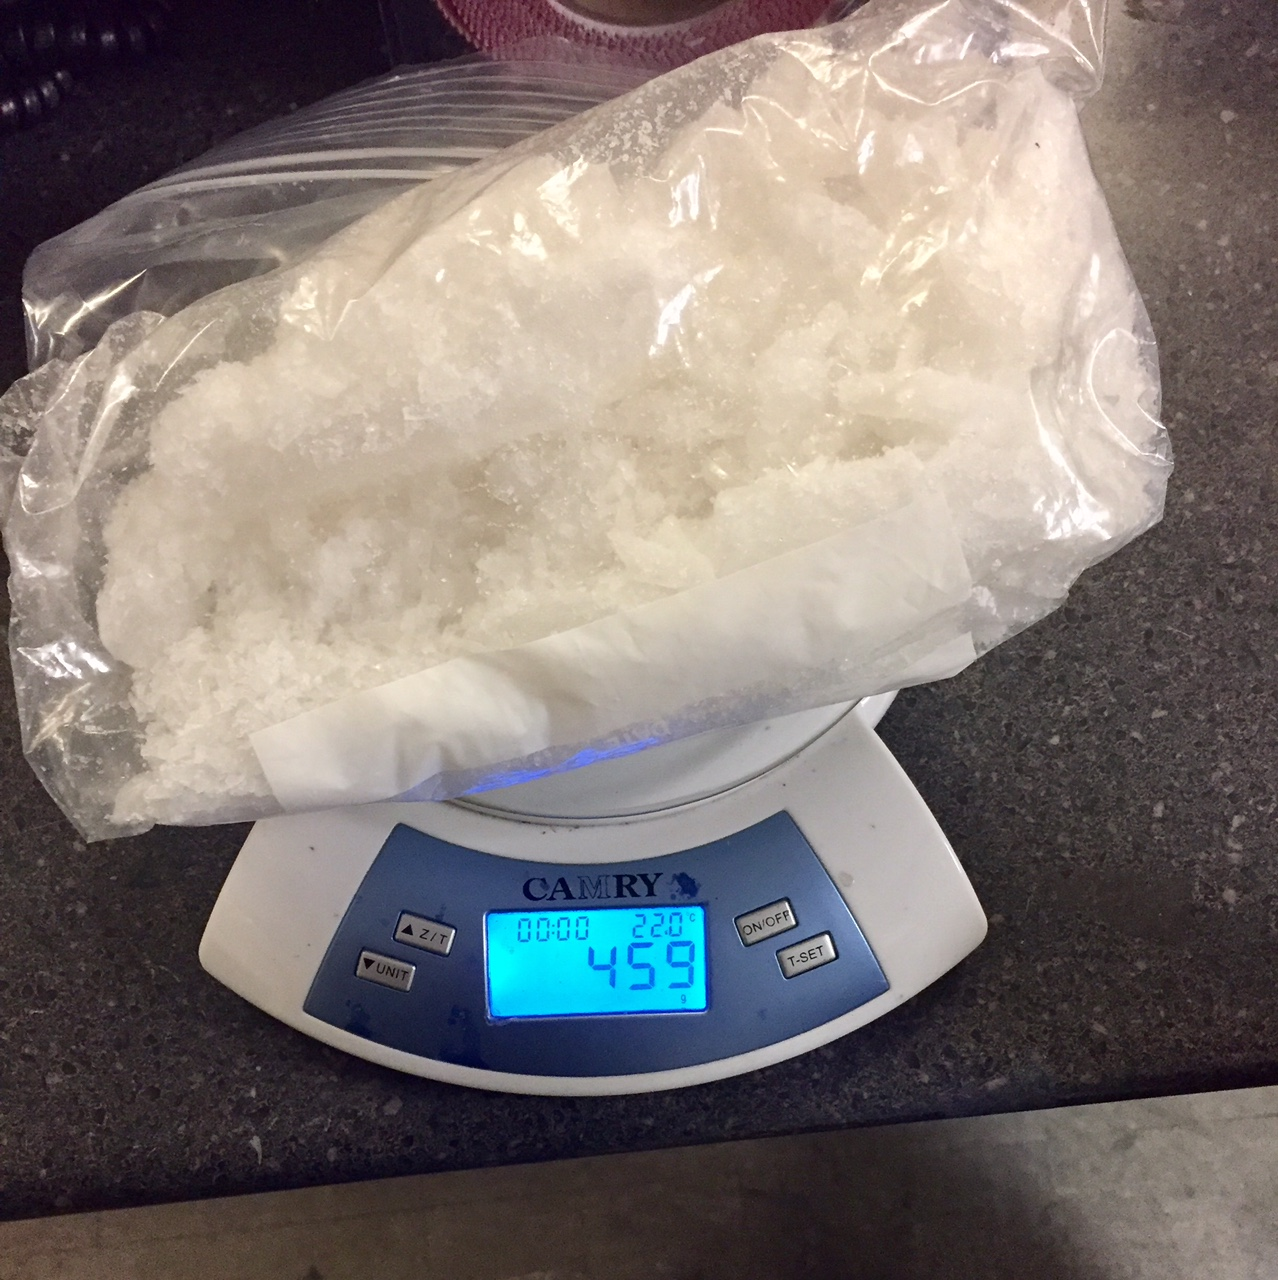 Sheriff deputies continue to take drugs off Bakersfield streets